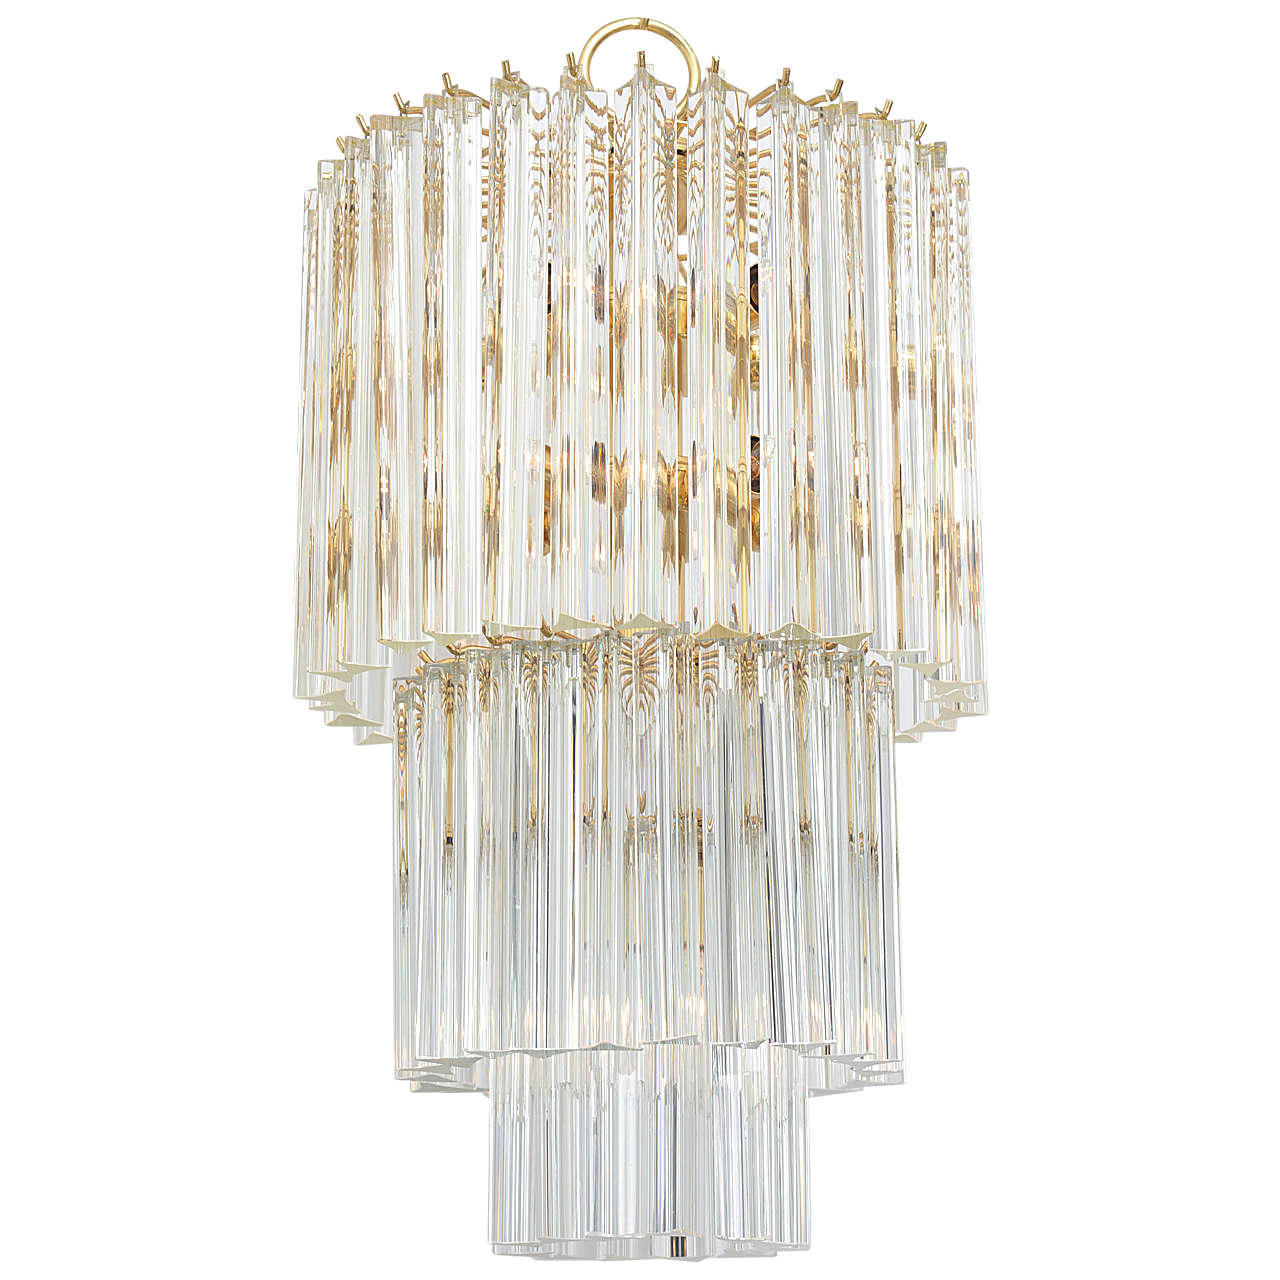 Murano Prism Chandelier: Venini Three-Tier Triedri Murano Glass Prism Chandelier At